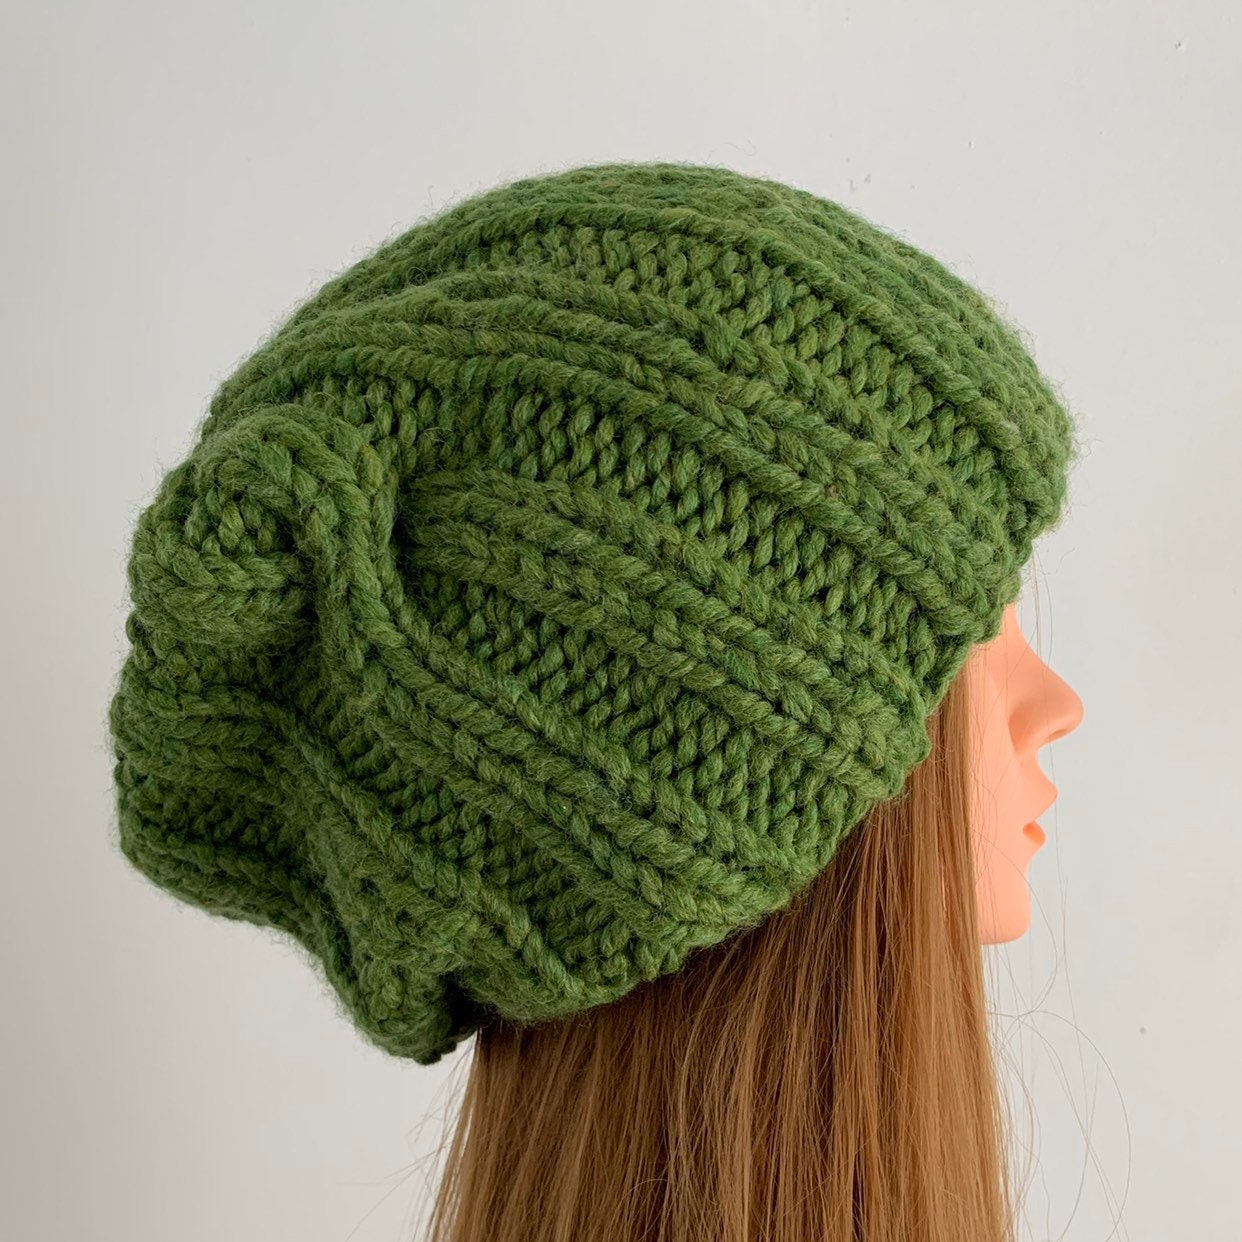 de8c367cc5c FREE SHIPPING Oversized Cable Beanie Hat Crochet Knit Handmade Wool Acrylic  Blend Unique Designer Unisex Adult Green Bulky Slouchy. gallery photo ...